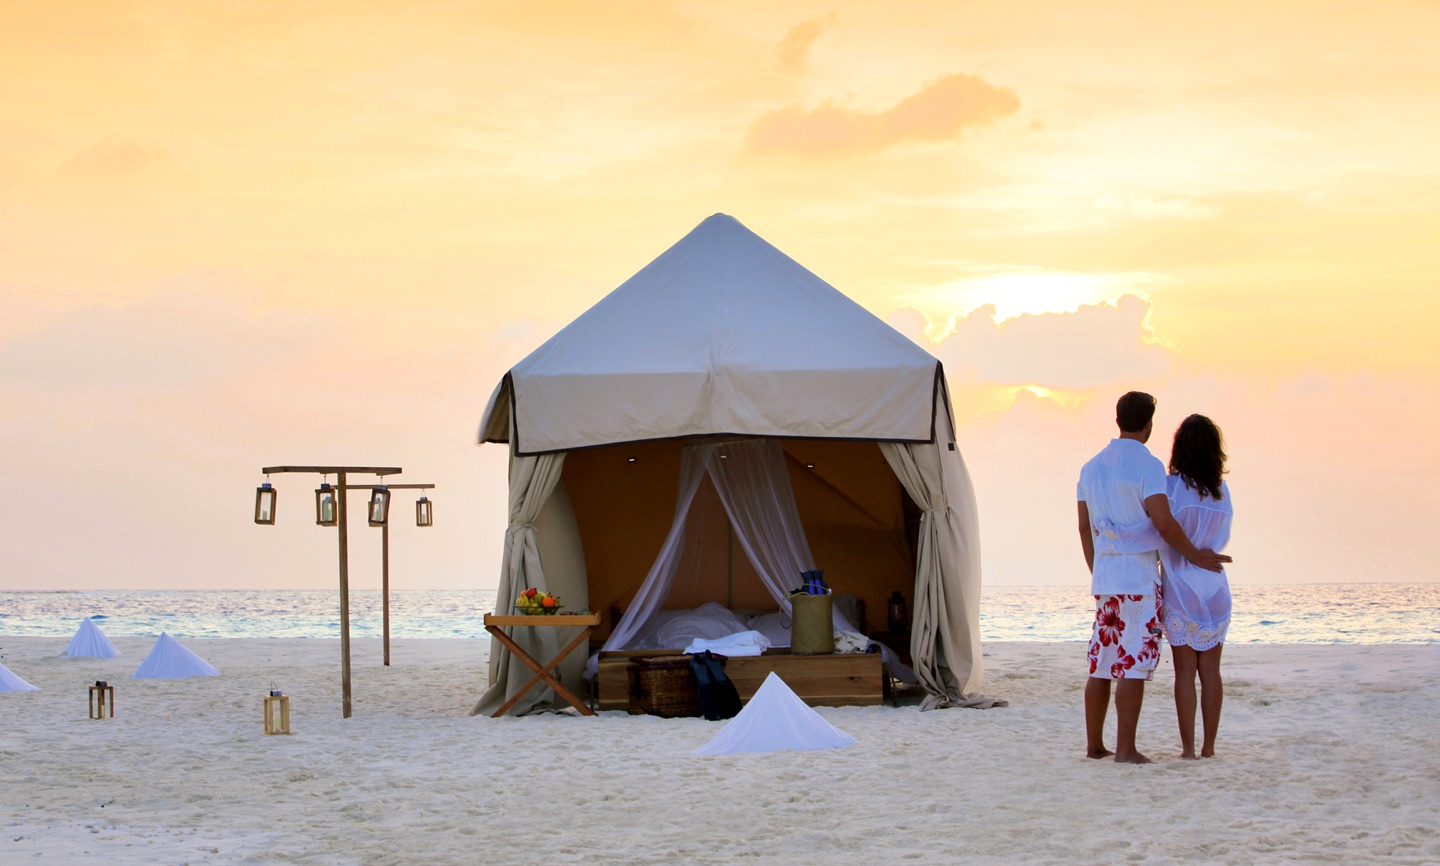 A luxury tent at dawn on the beach